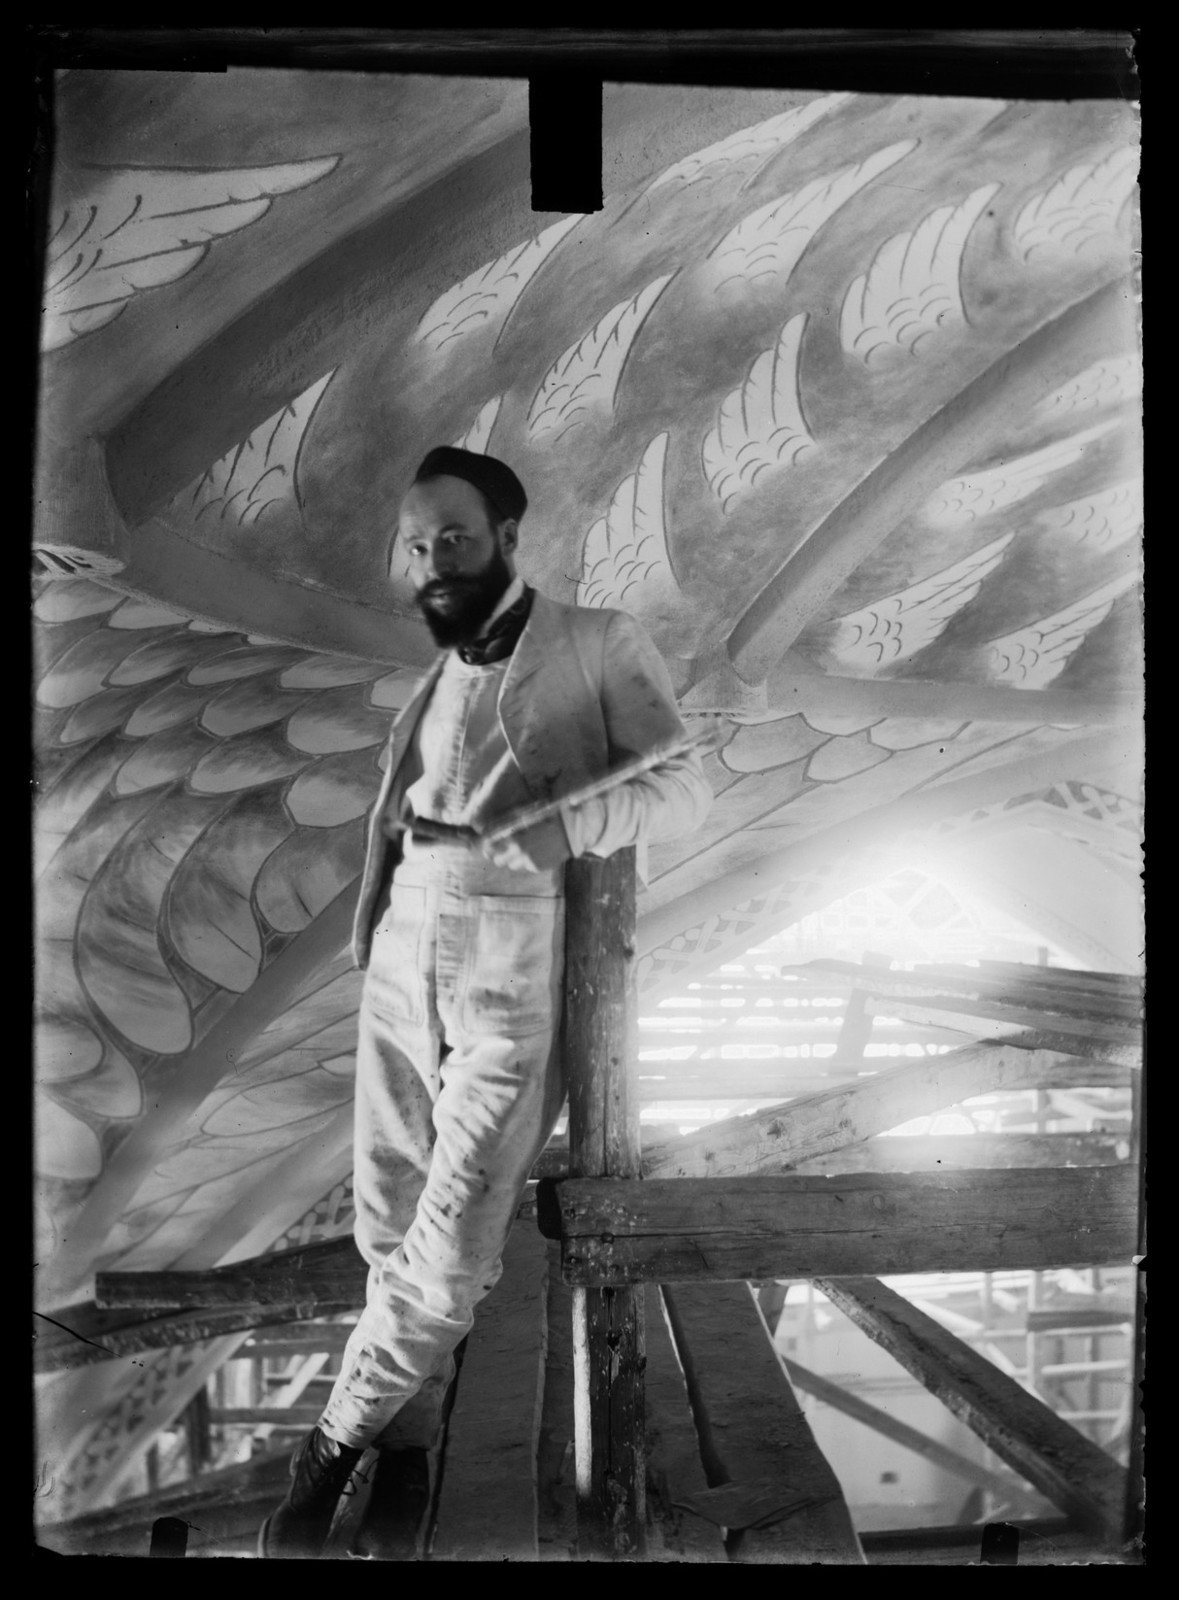 [At work on the ceiling fresco at Tampere], 1904, Hugo Simberg, Finnish National Gallery, CC BY